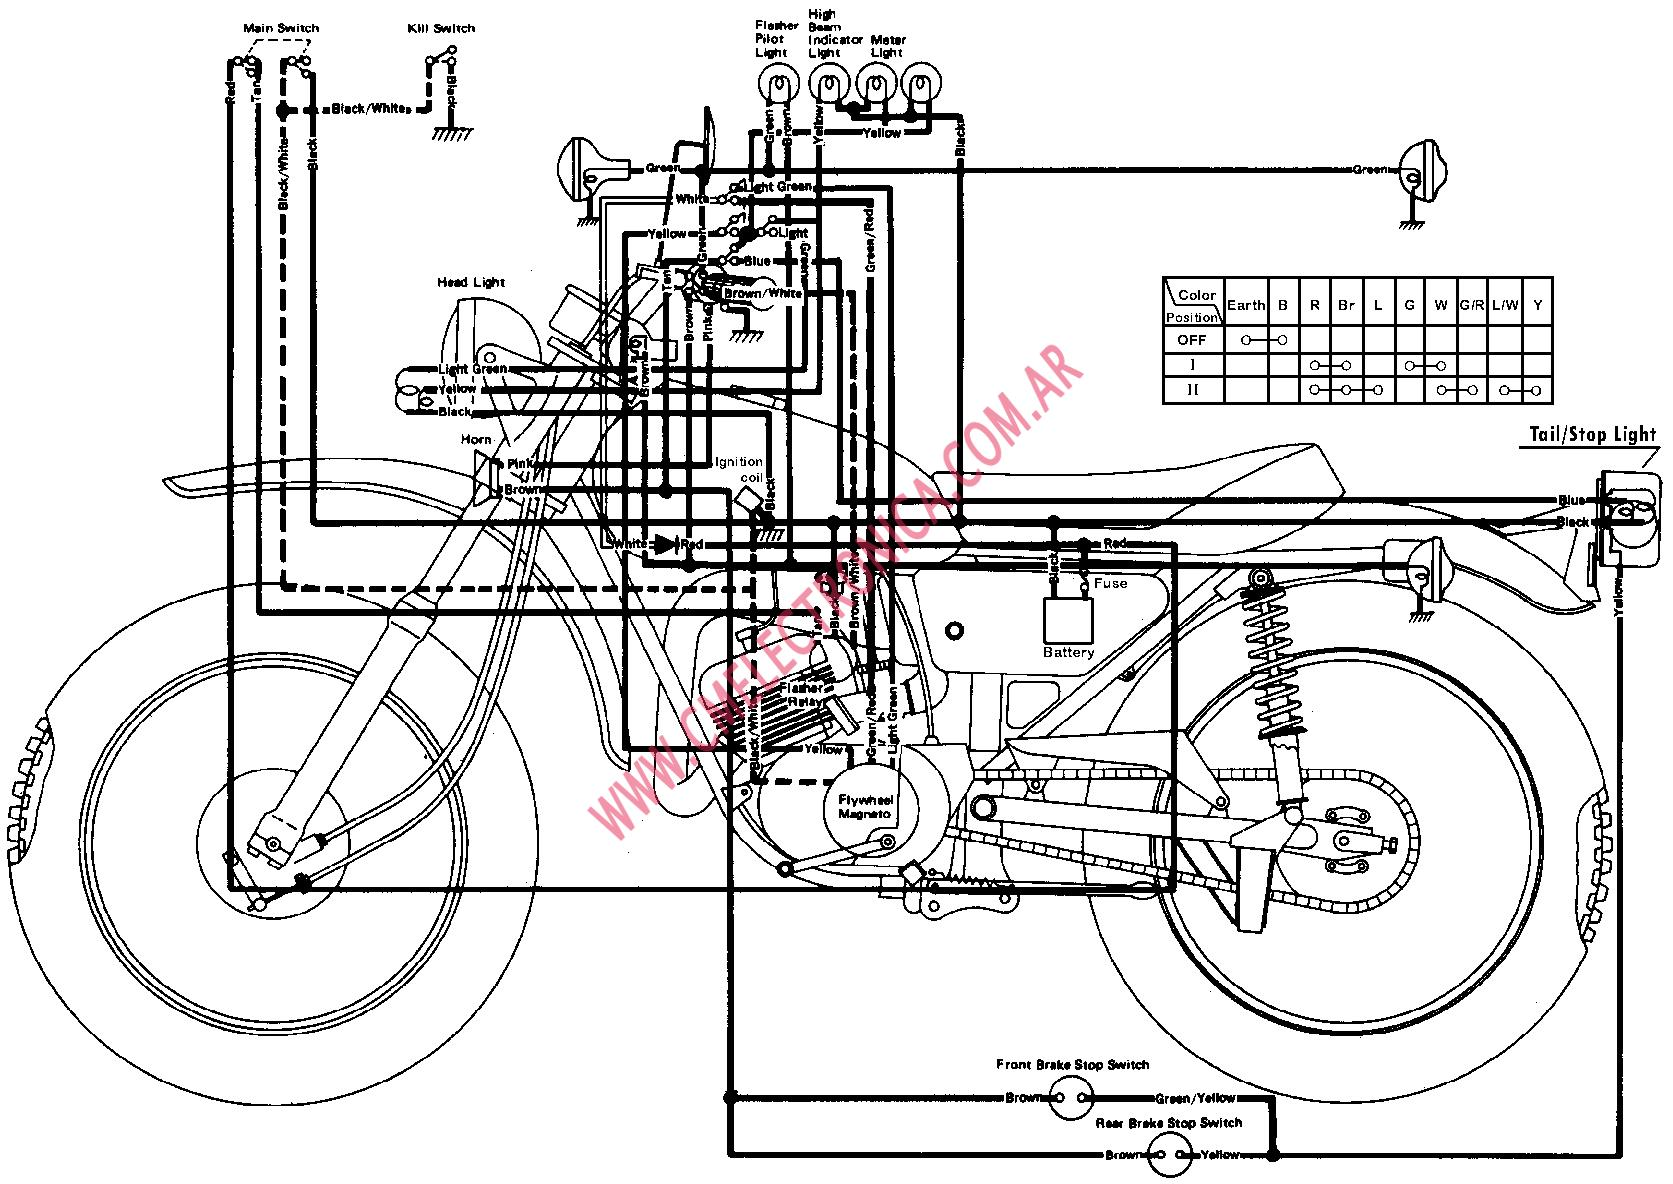 1974 yamaha 360 enduro wiring diagram